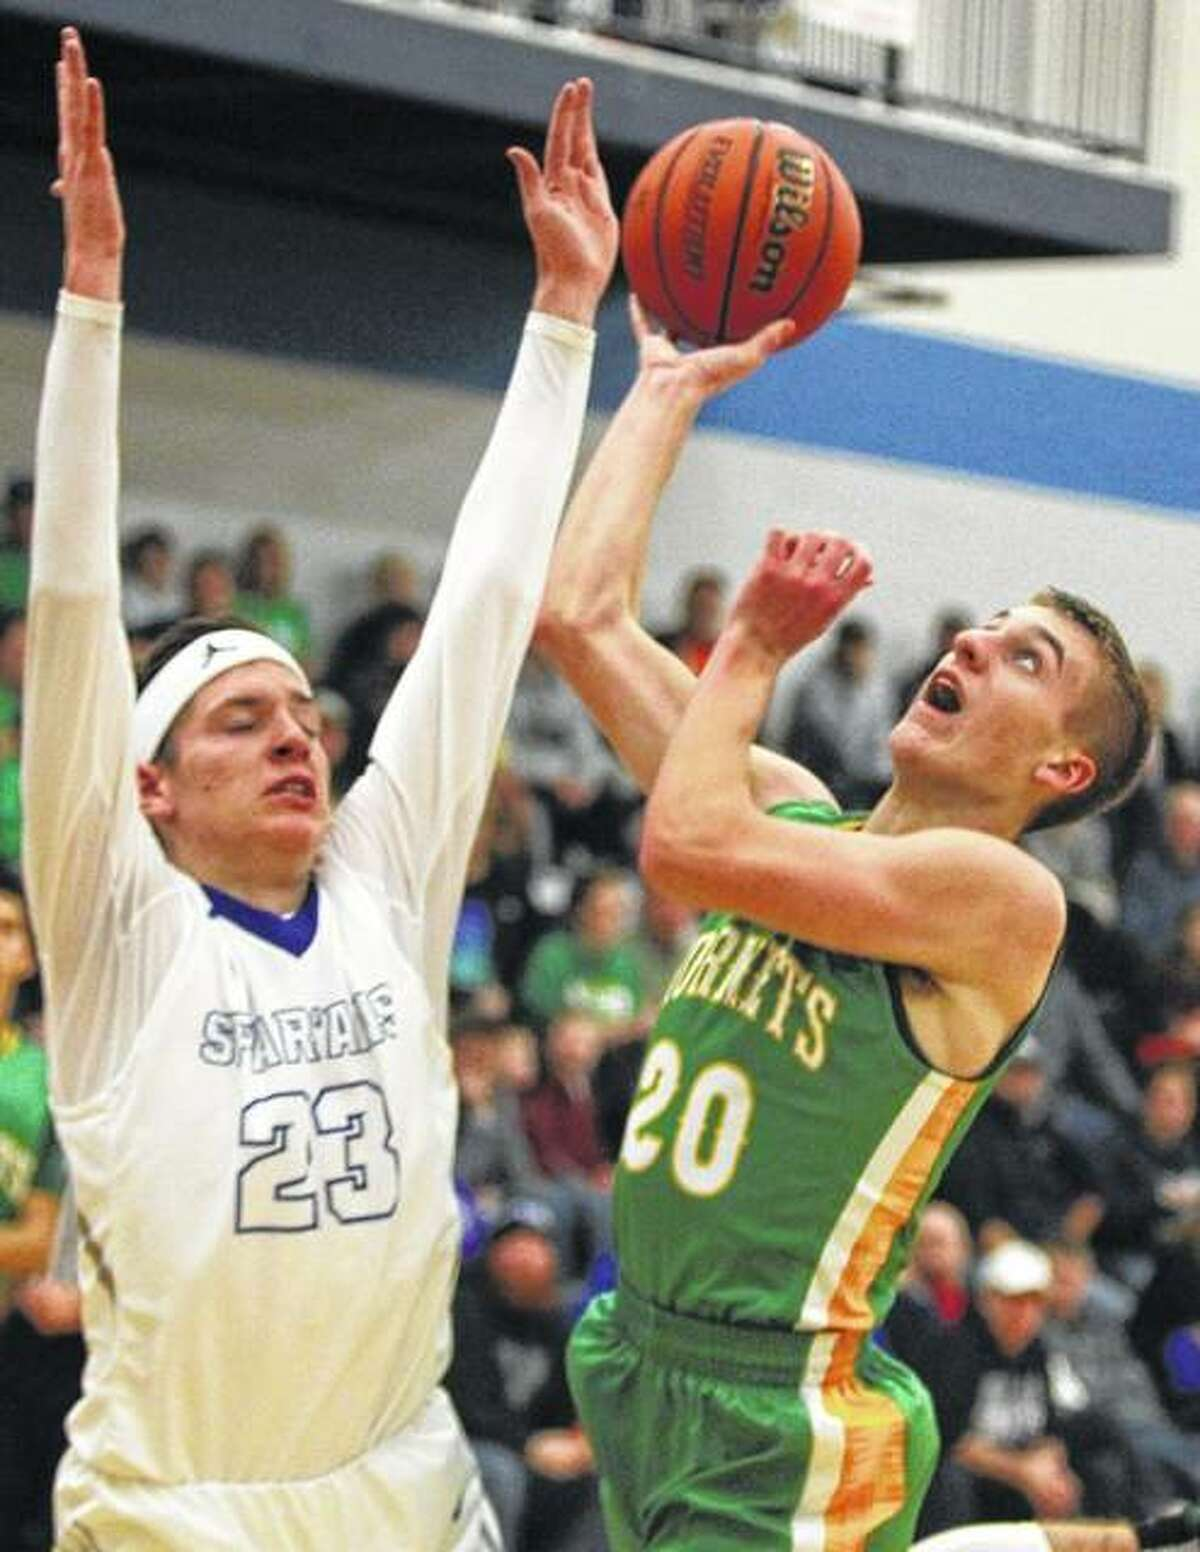 Brown County's Nathan Hendricker (right) puts up a shot over North Greene's Jonah Hopper during Friday night's championship game of the North Greene Tournament in White Hall. Brown County won in overtime.